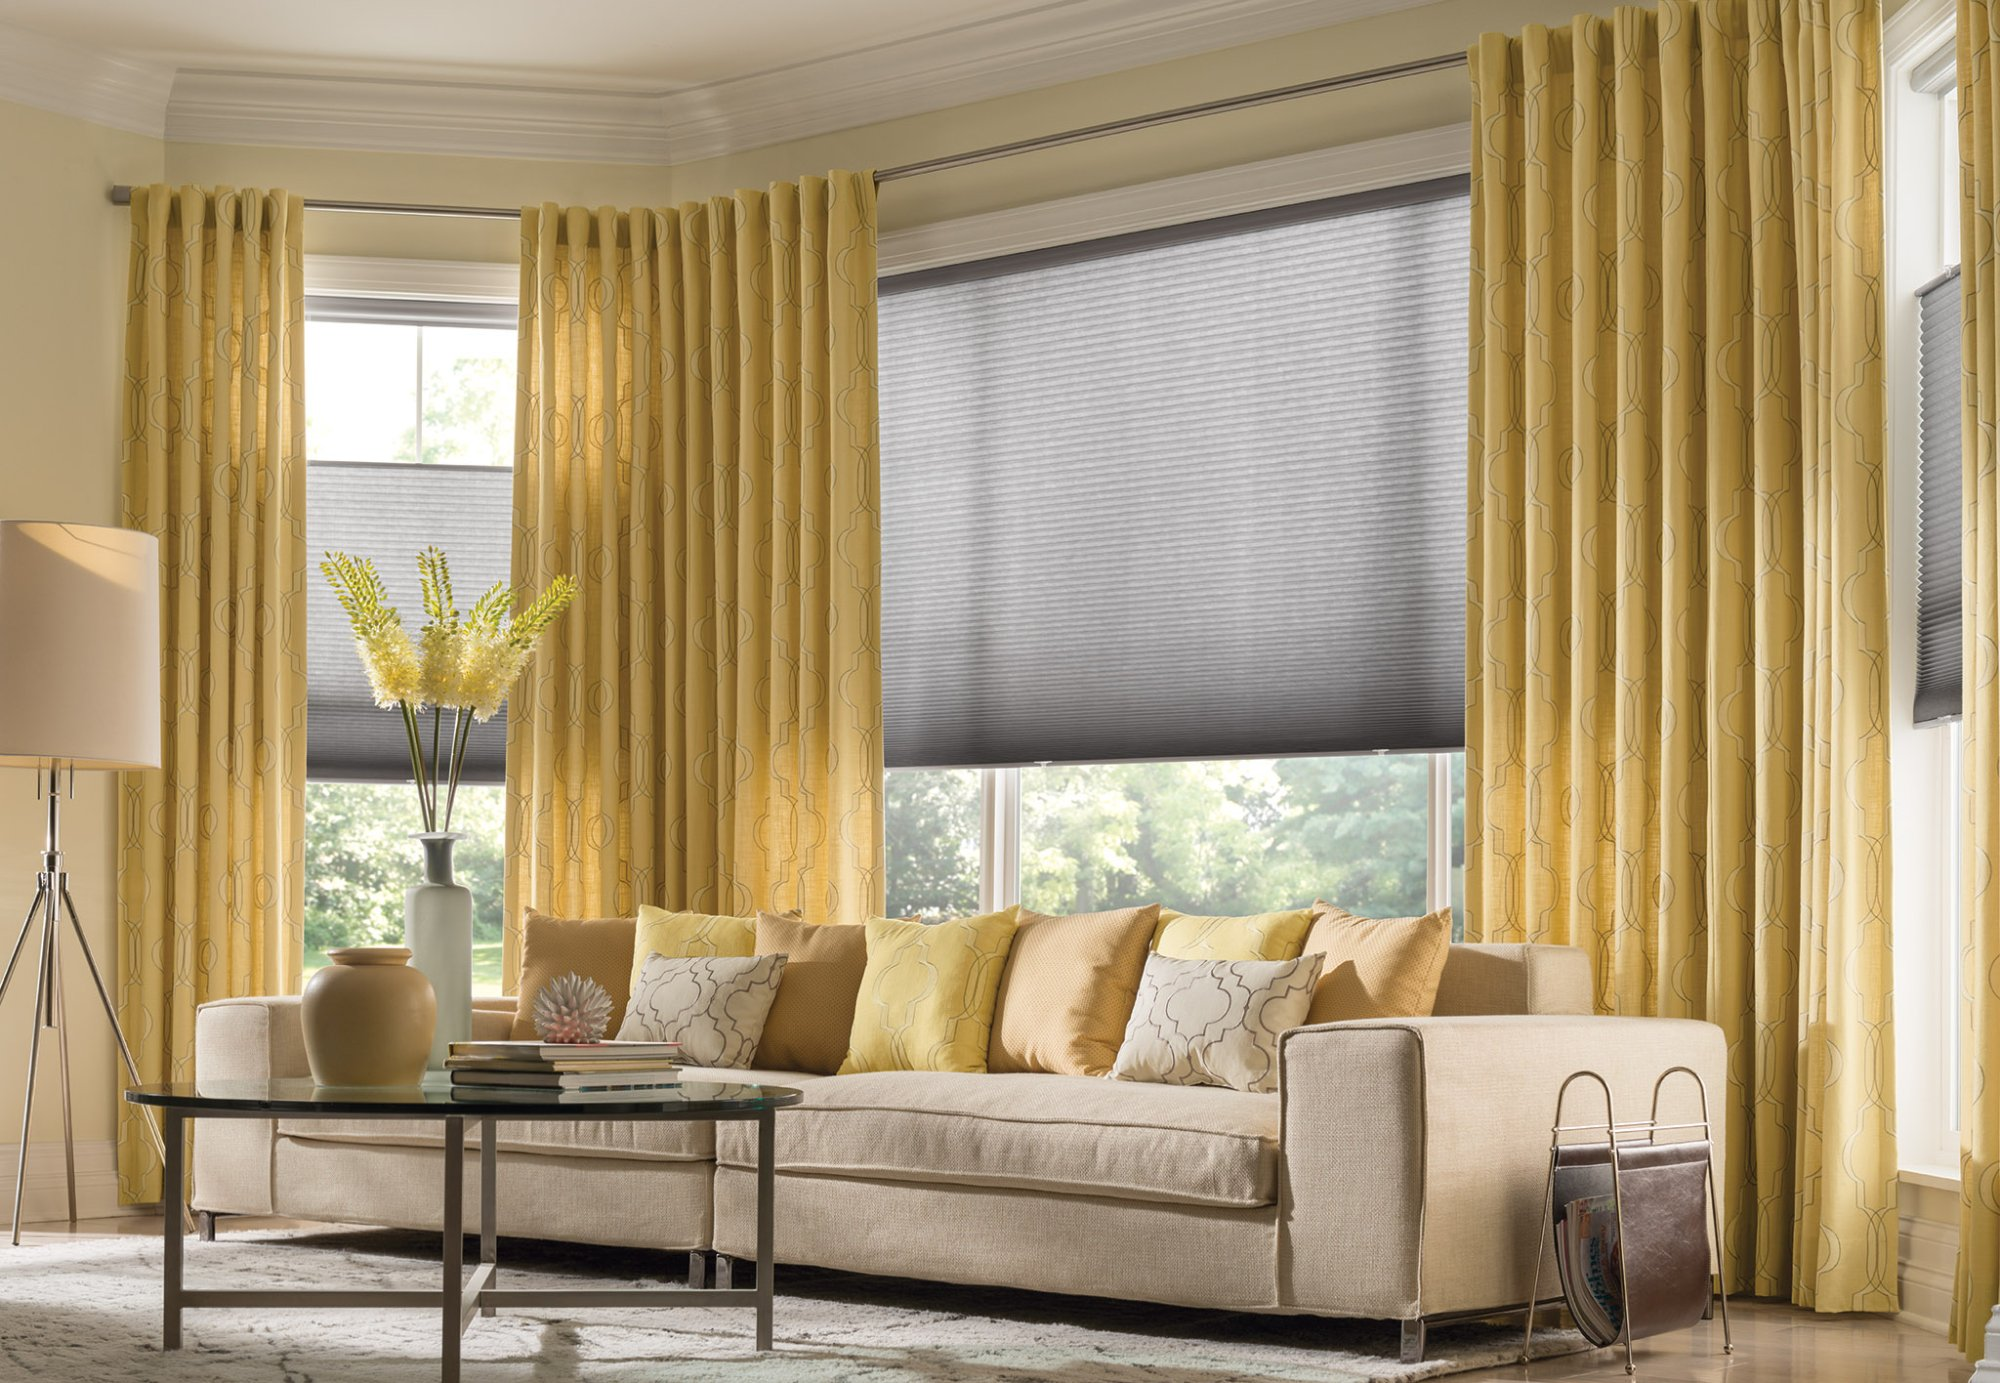 Draperies • Sheer Sun Shades • Blinds • Shutters • Roman Shades • Upholstery • Installation